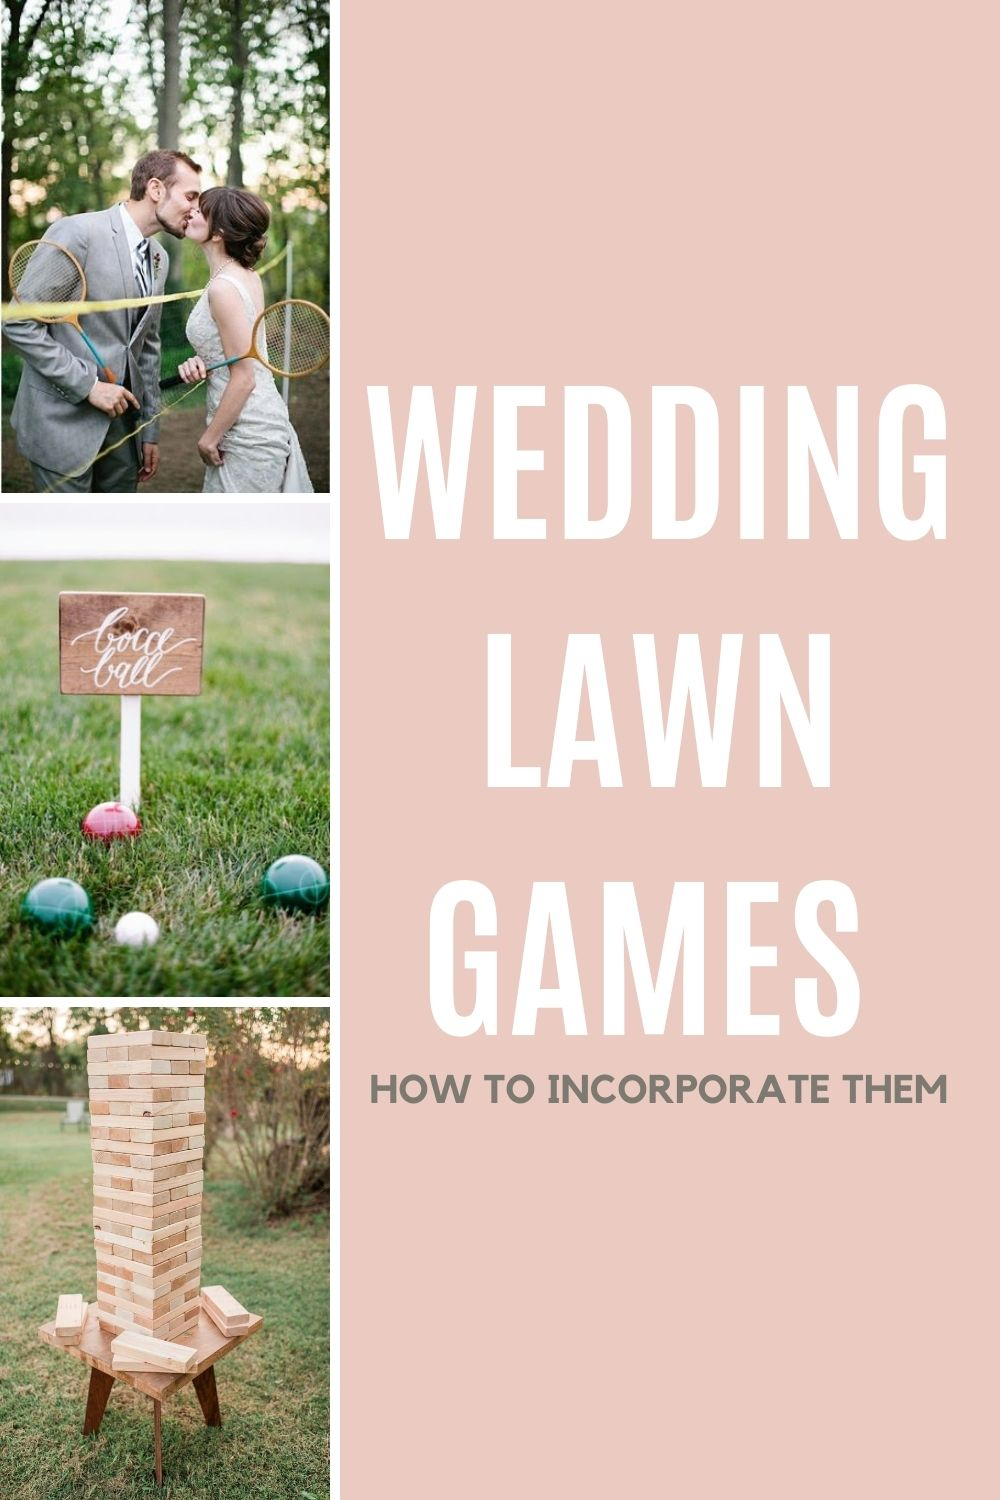 Wedding Lawn Games How To Incorporate them